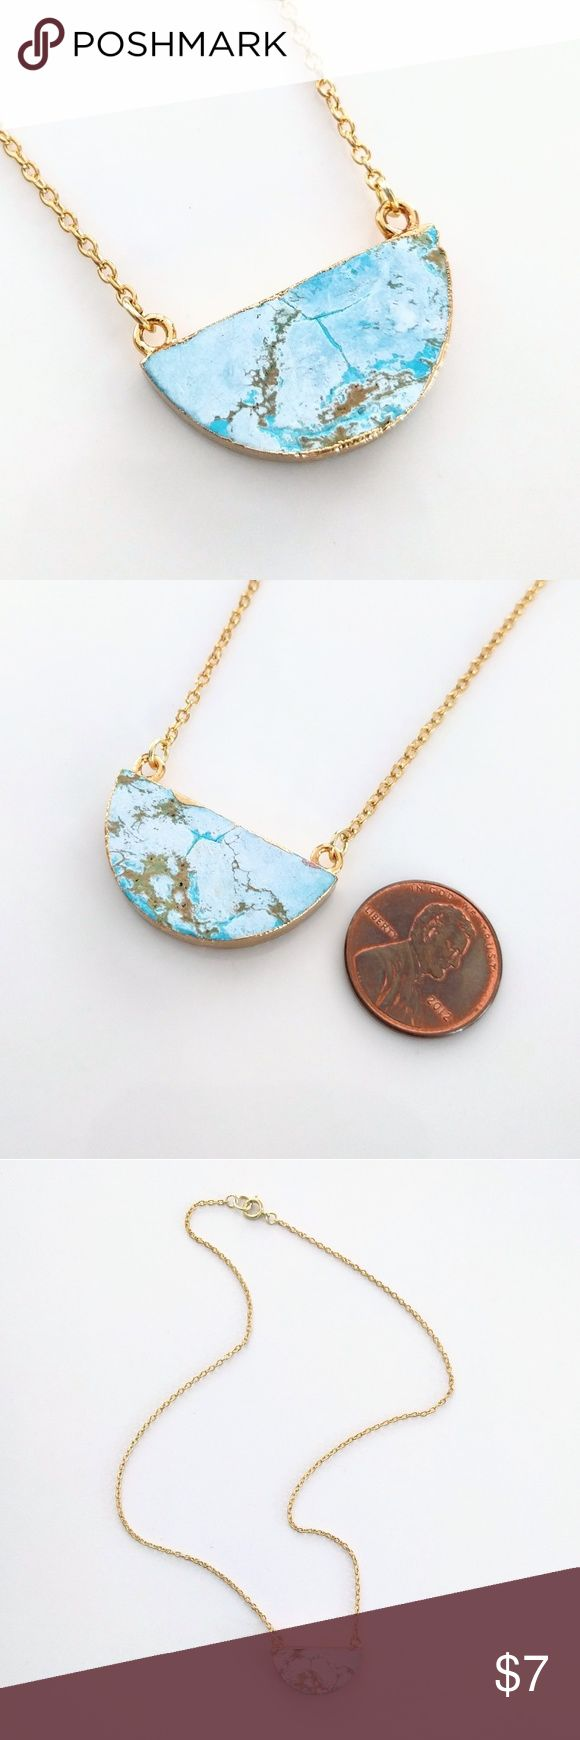 """Gold-plated turquoise howlite half moon necklace CLOSET CLOSING CLEARANCE!  All prices are firm; no additional offers accepted.  I'm earning no profits, just liquidating everything before moving abroad.  I'm listing as many items as I can as quickly as I'm able, but things are selling fast, so grab your faves while you can!    Nickel free.  About 20"""" long. Jewelry Necklaces"""